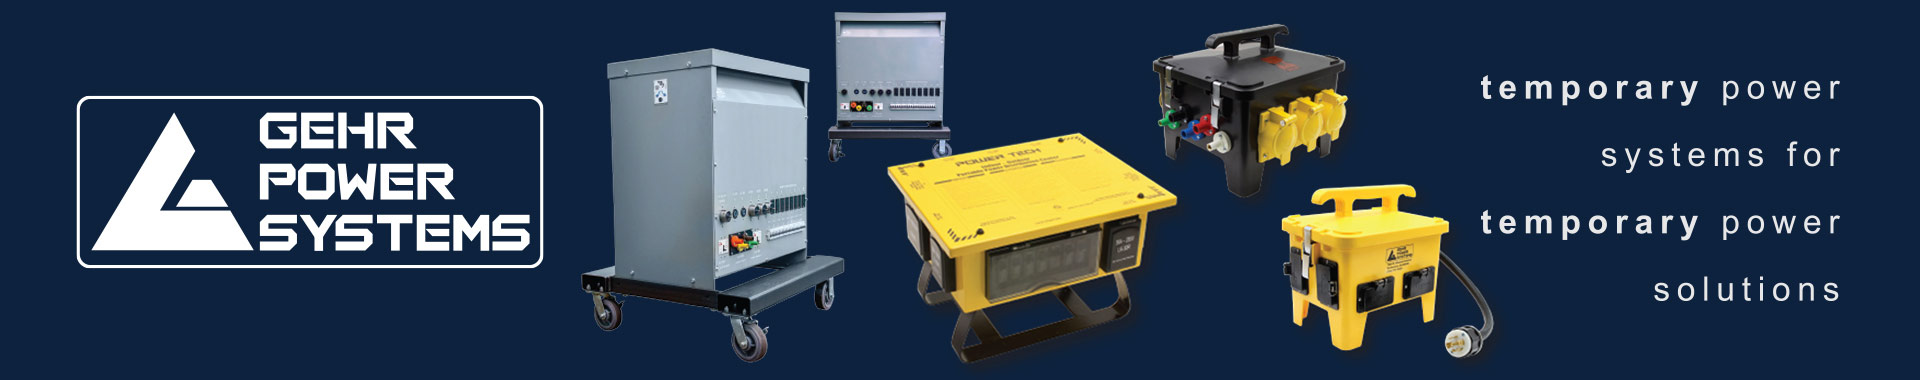 temporary power systems for temporary solutions - Gehr Power Systems